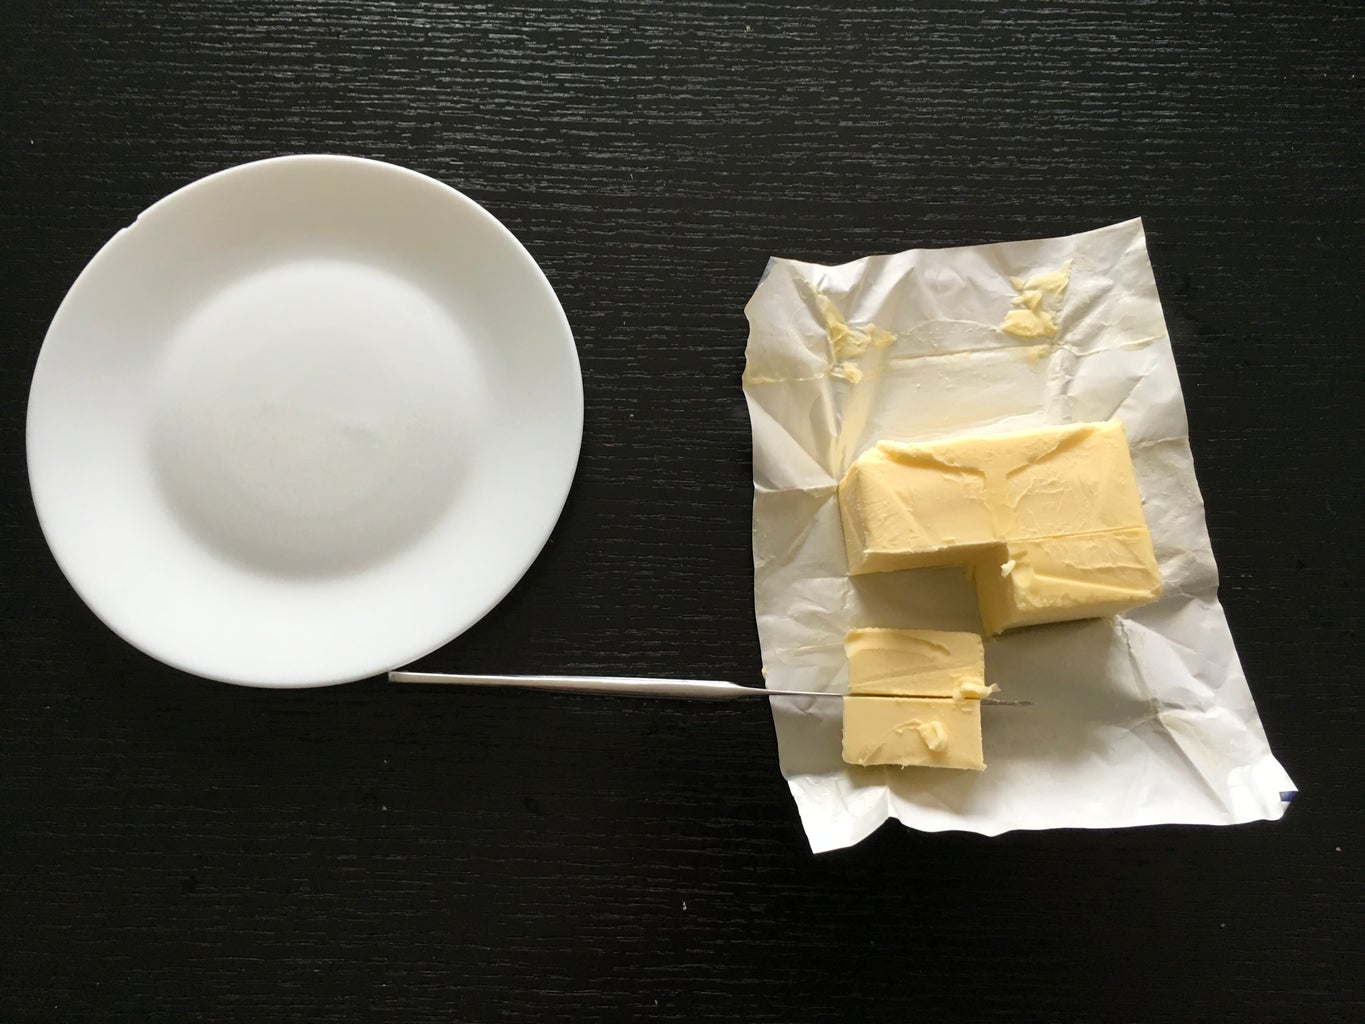 Cutting and Molding the Butter